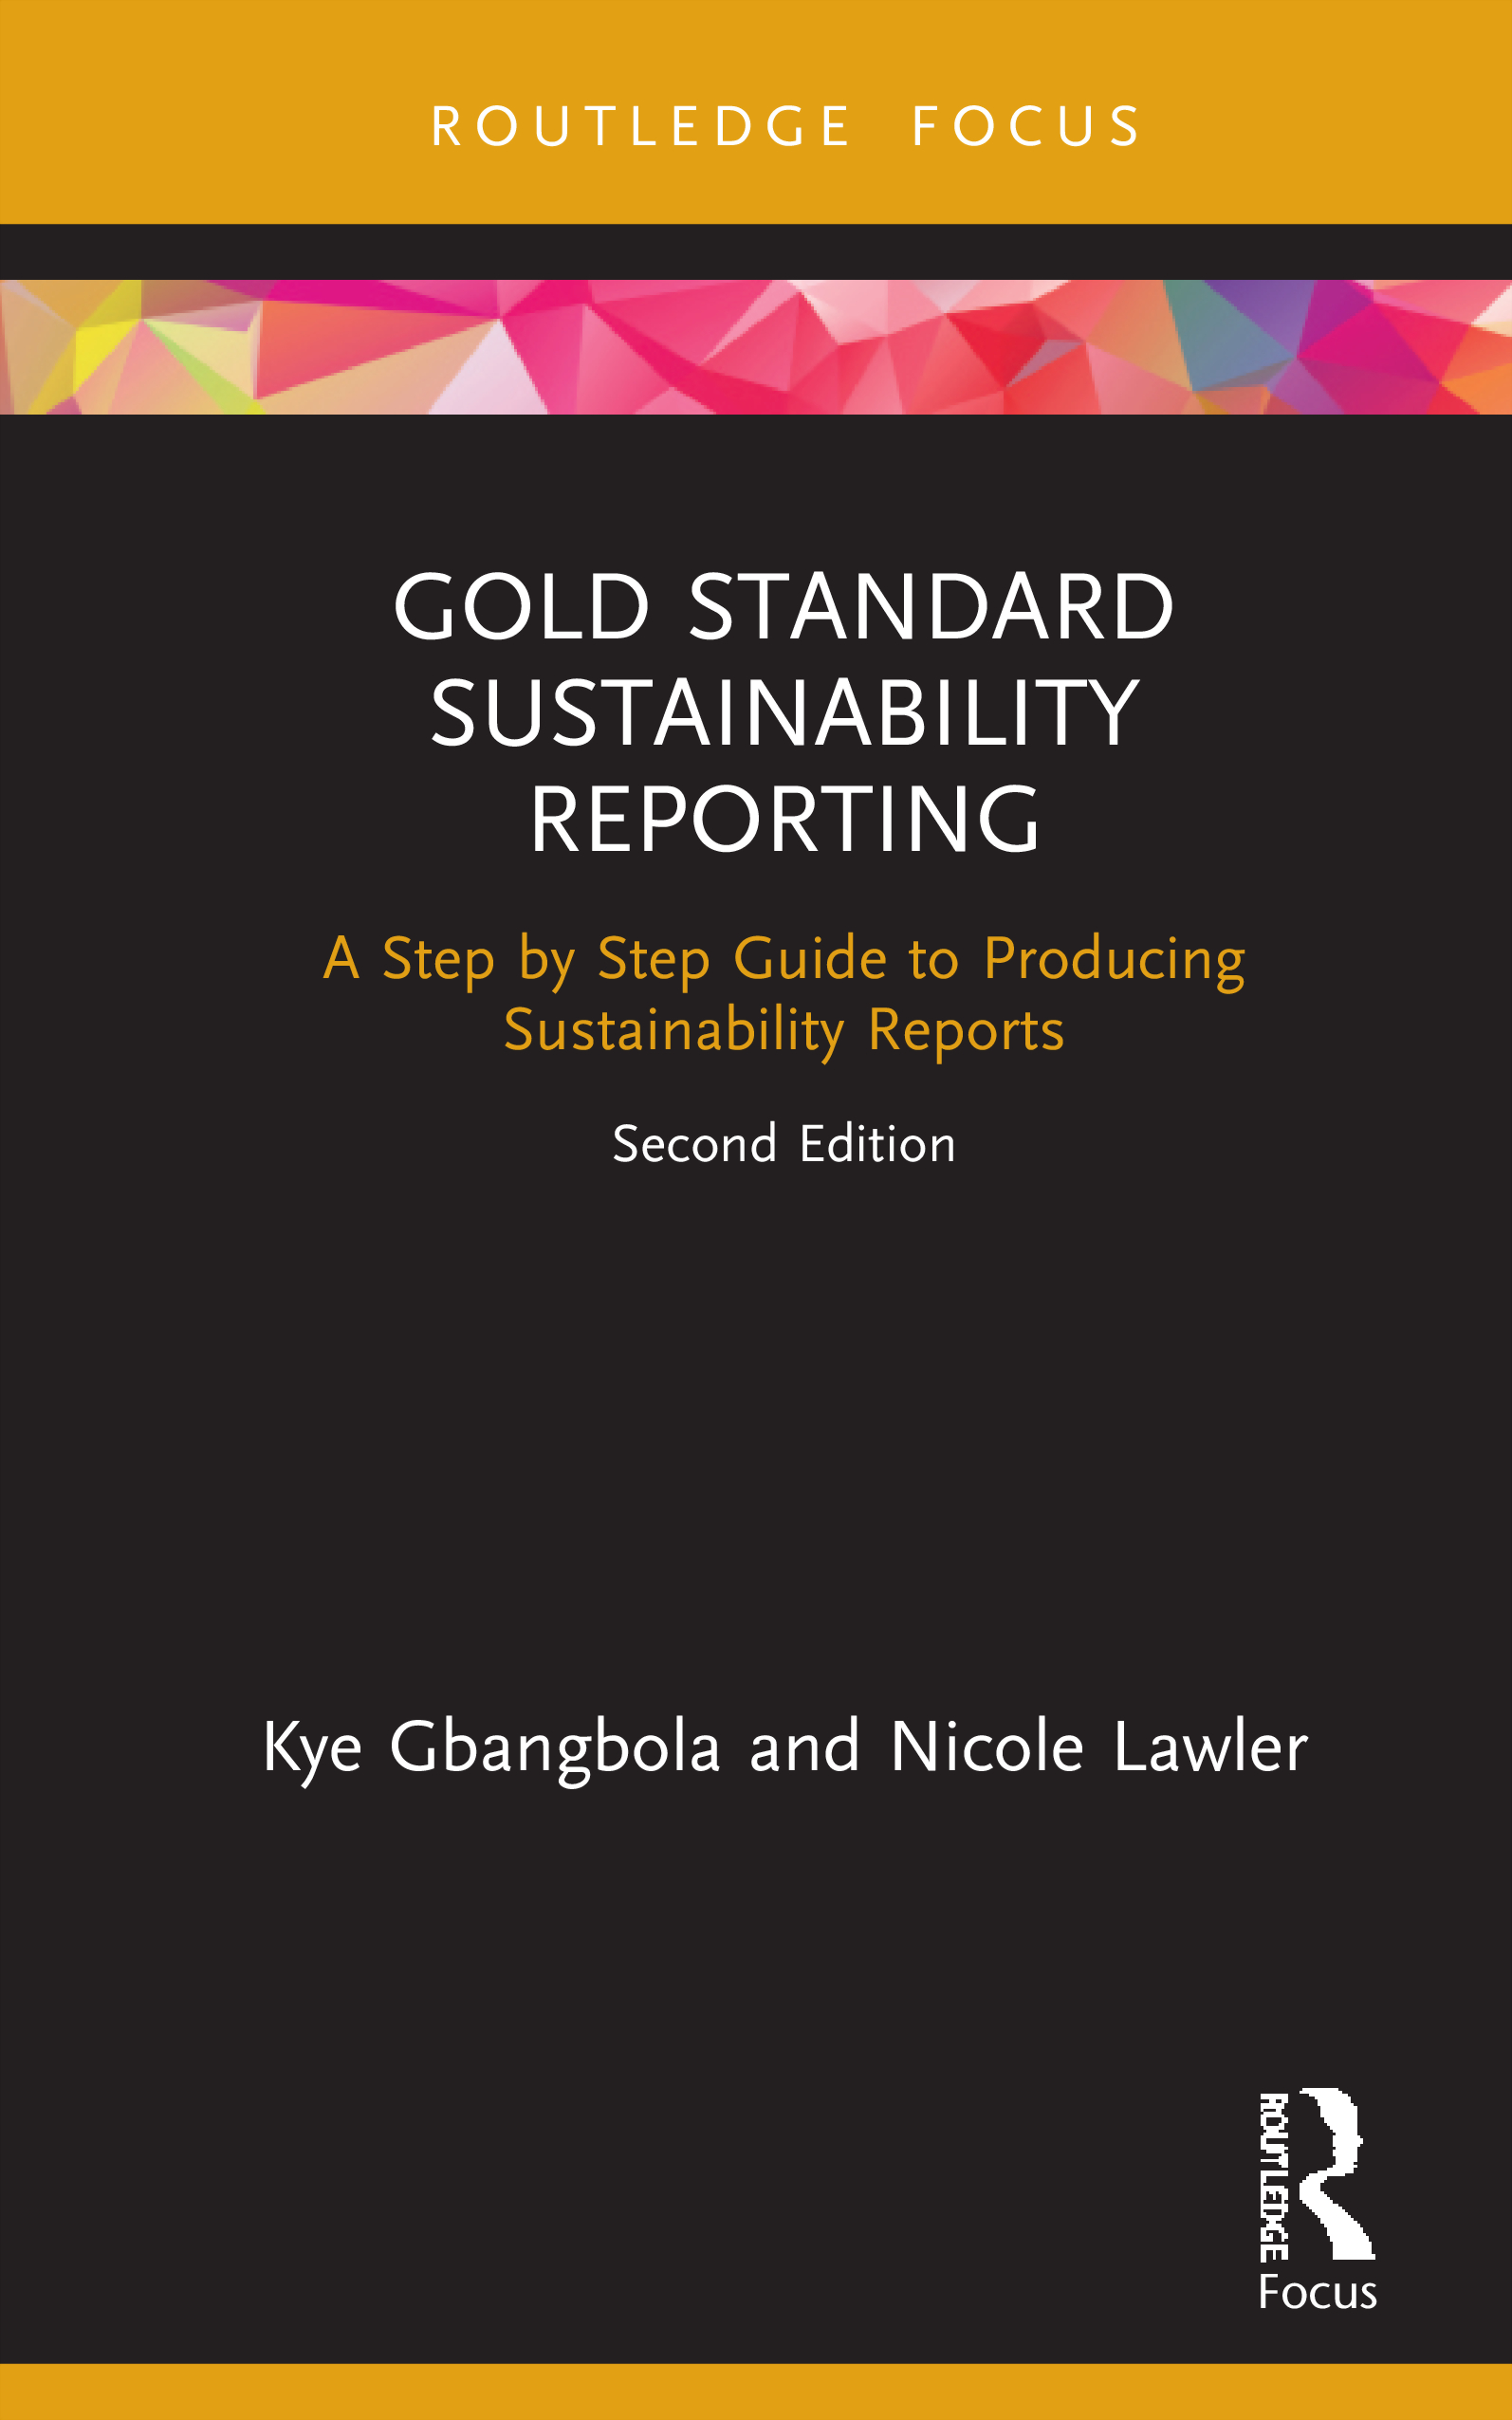 Gold Standard Sustainability Reporting: A Step by Step Guide to Producing Sustainability Reports book cover